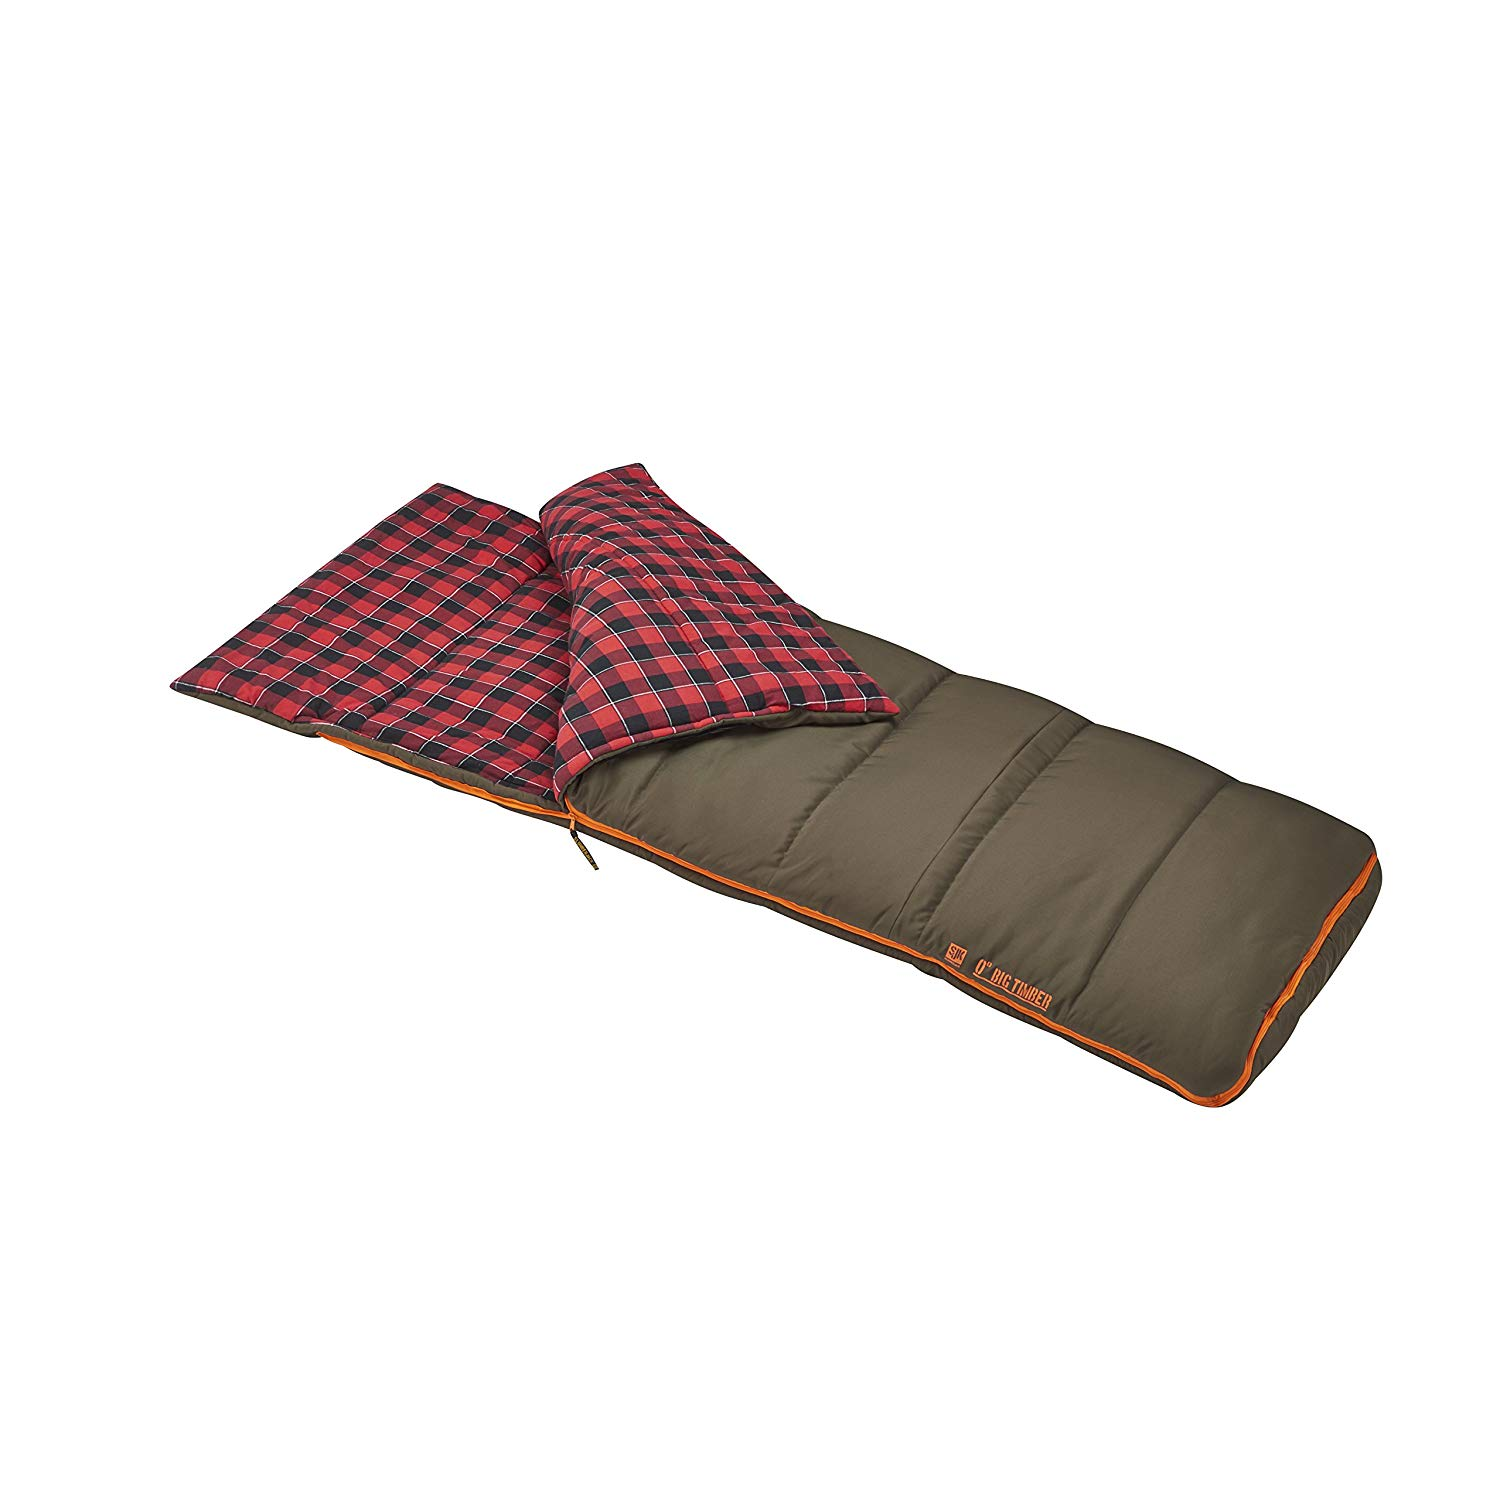 An image of Slumberjack Big Timber Pro 0 Degree Flannel Sleeping Bag